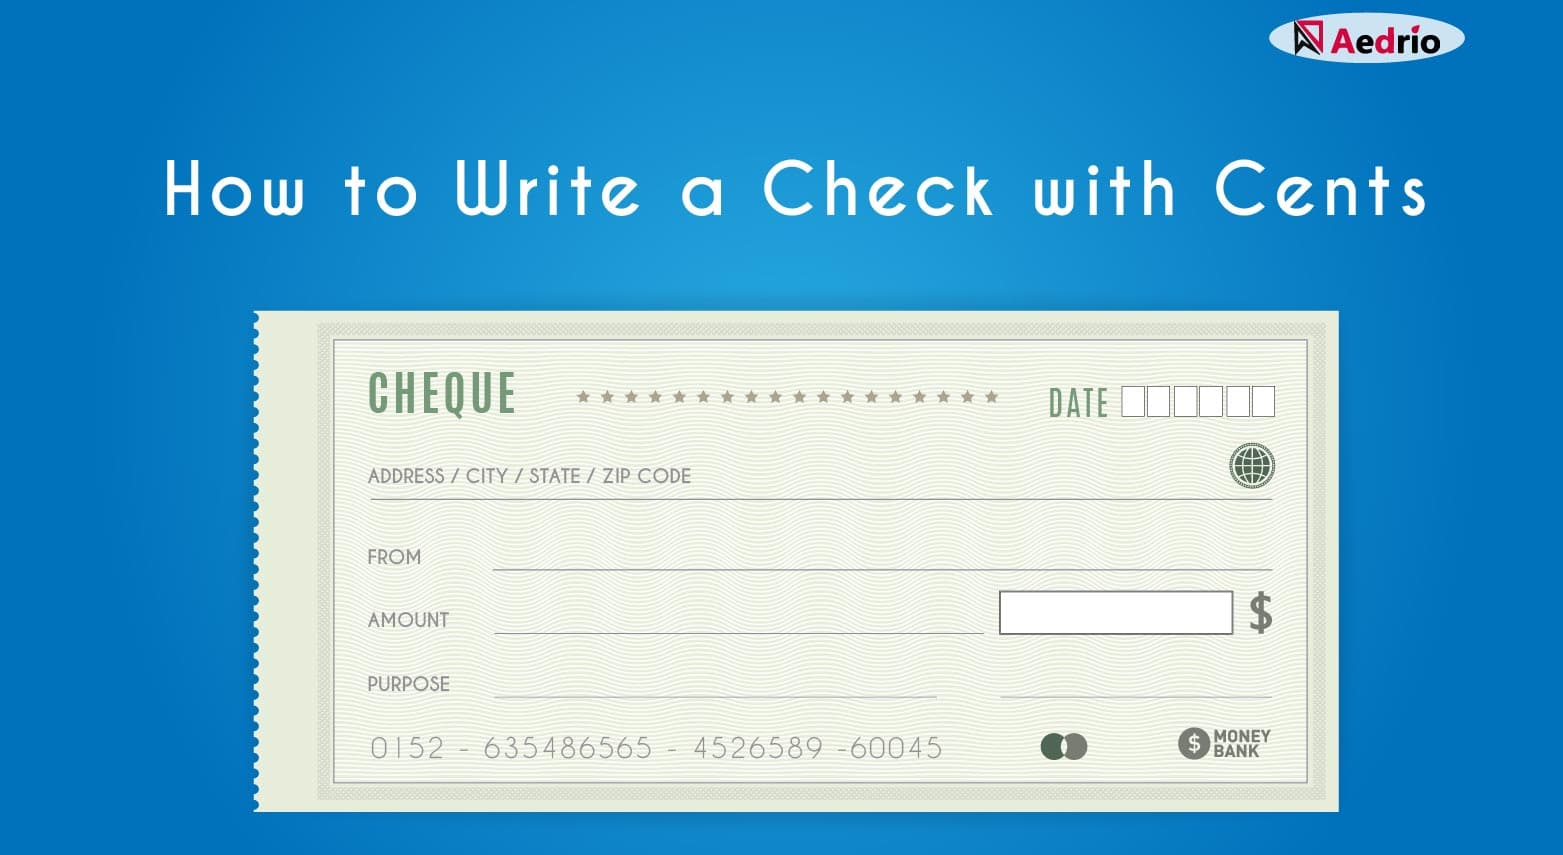 How To Write A Check With Cents The Easy Way